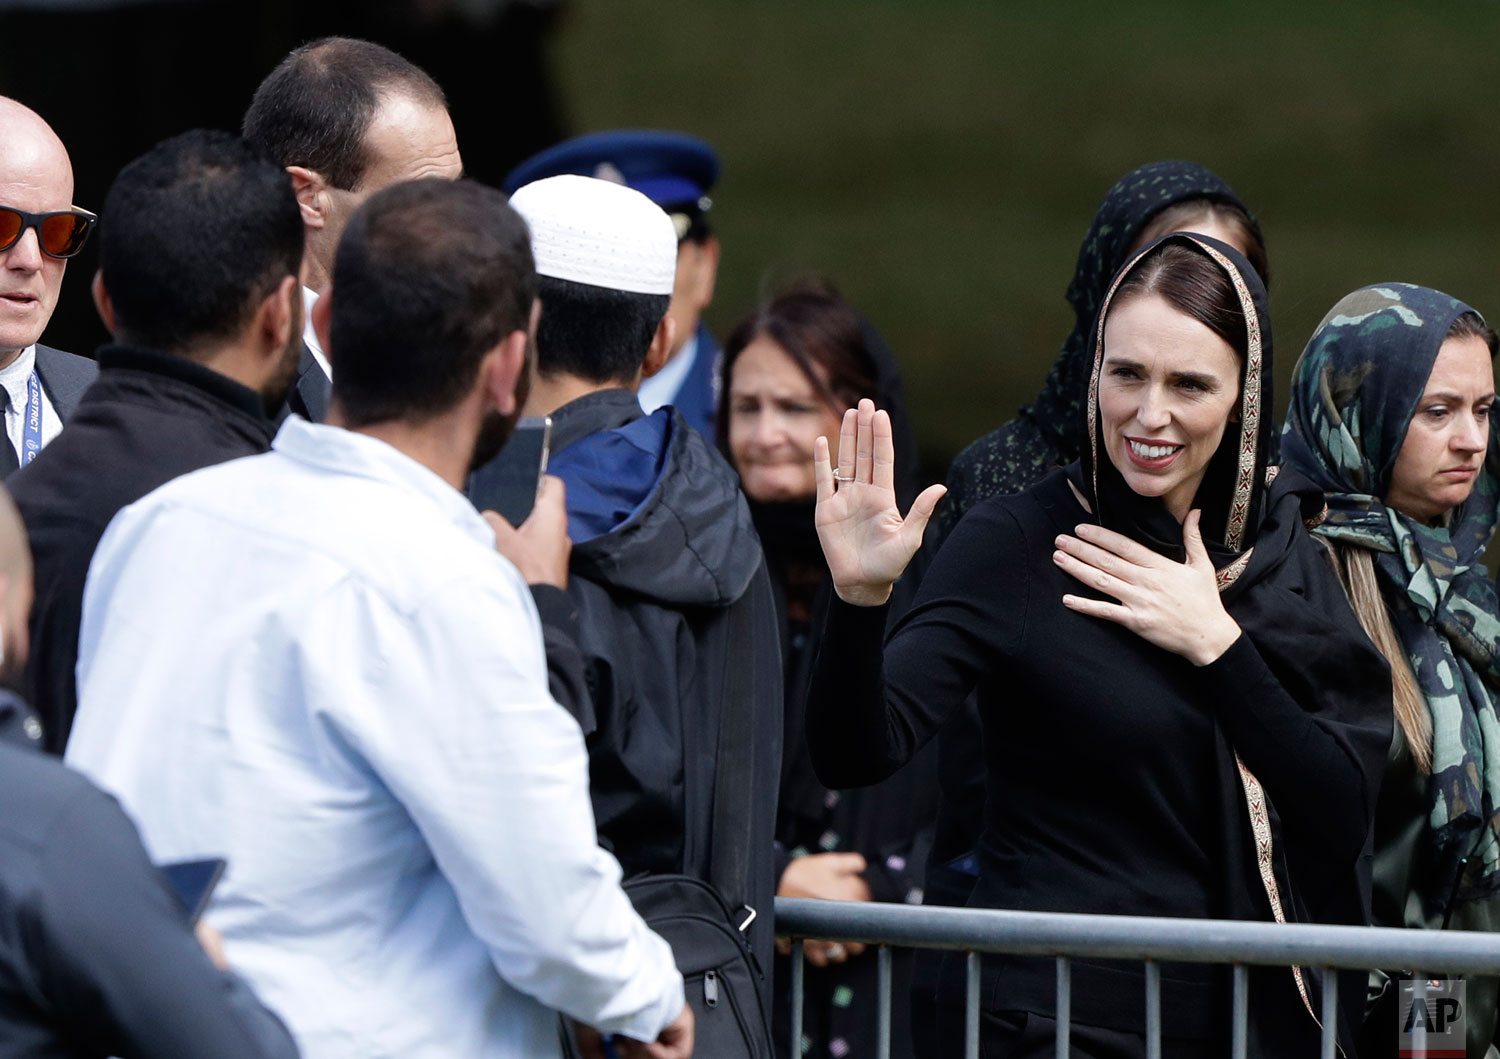 New Zealand Prime Minister Jacinda Ardern waves as she leaves Friday prayers at Hagley Park in Christchurch, New Zealand, Friday, March 22, 2019. Thousands of people gathered in a Christchurch city park near the Al Noor mosque where a gunman killed some of the 50 worshippers in a white supremacist attack on two mosques.  (AP Photo/Mark Baker)